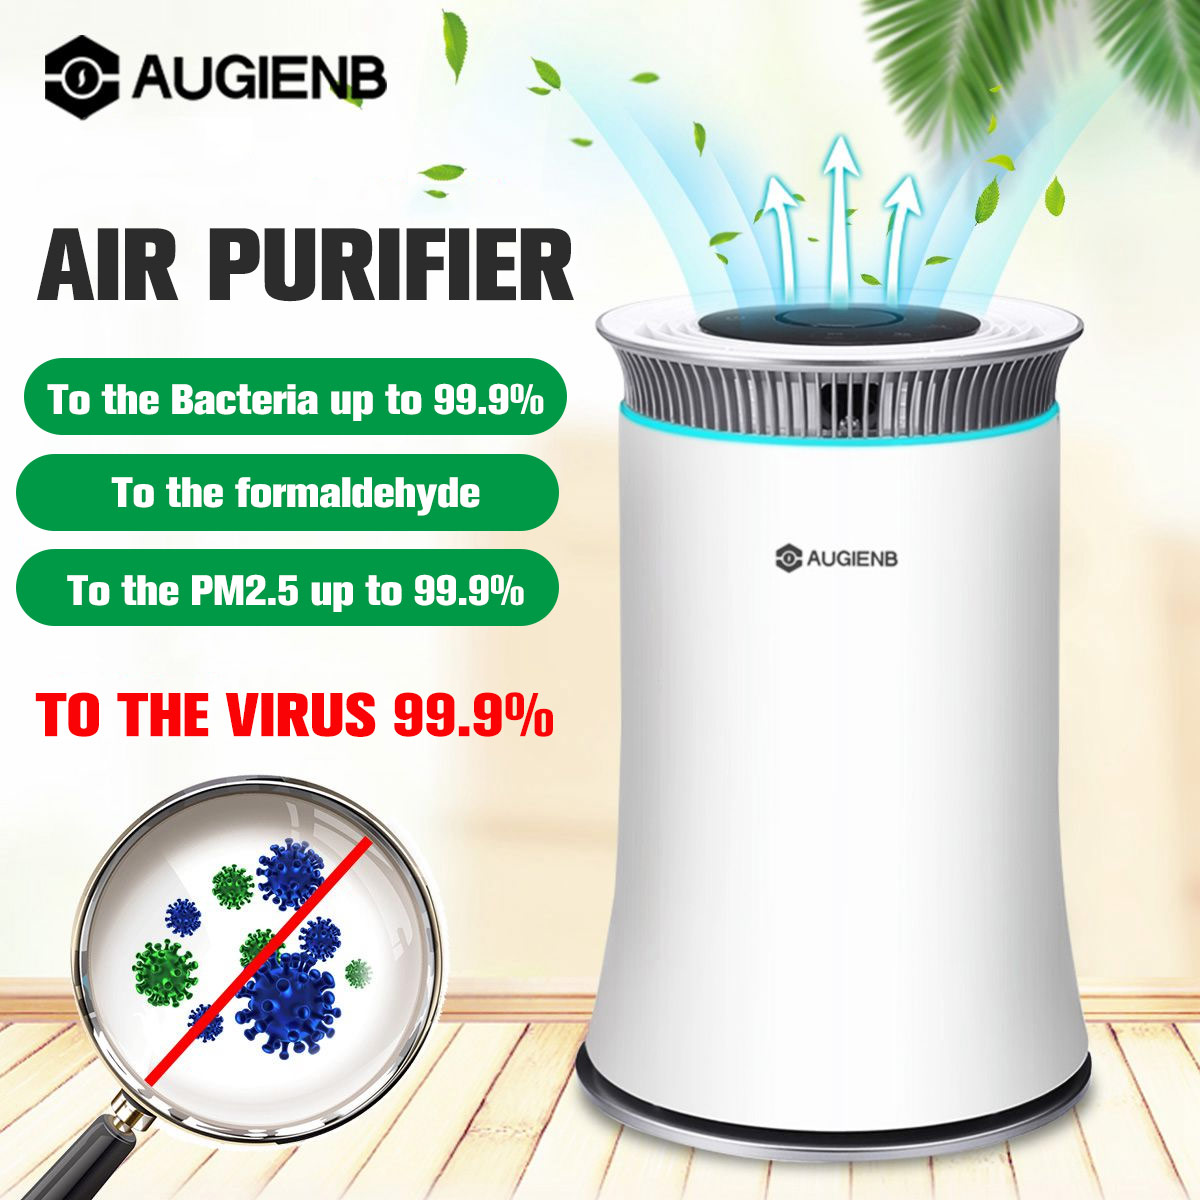 AUGIENB Air Purifier HEPA Filter Negative Ion Fresh Air Smart 8H Timer Touch Button Control For Home Office With LED Night Light